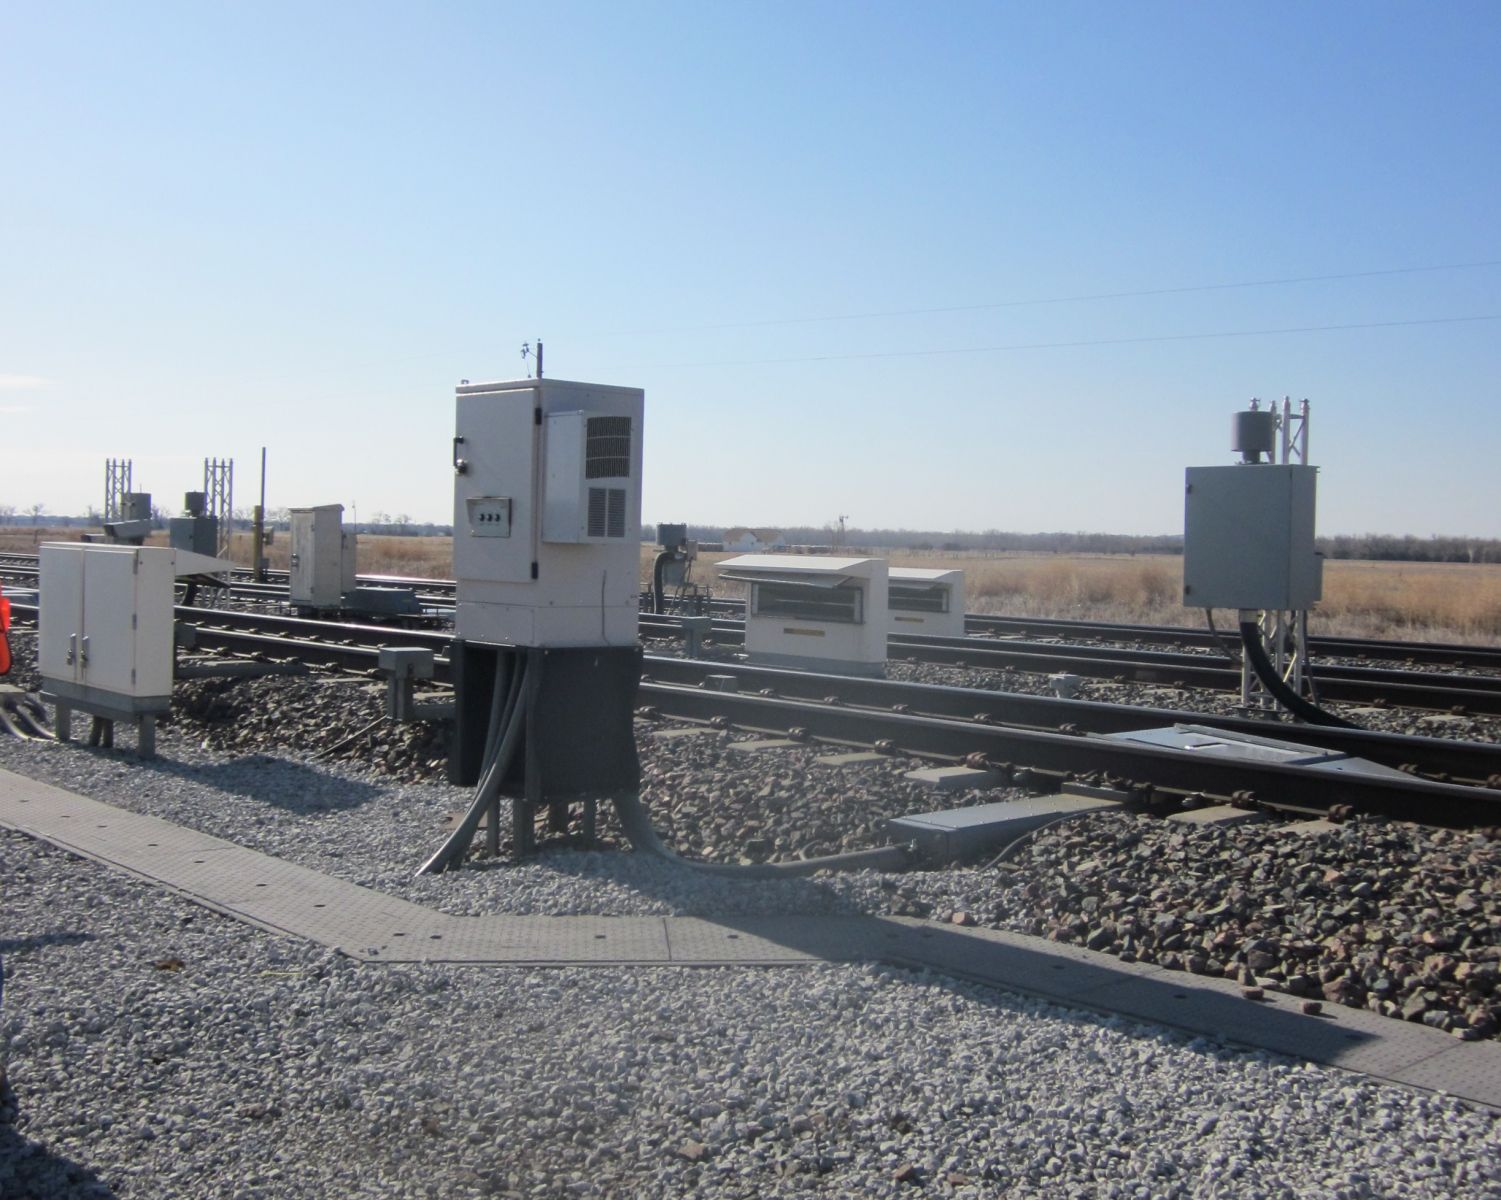 sfx17 outdoor enclosure trackside in positive train control application